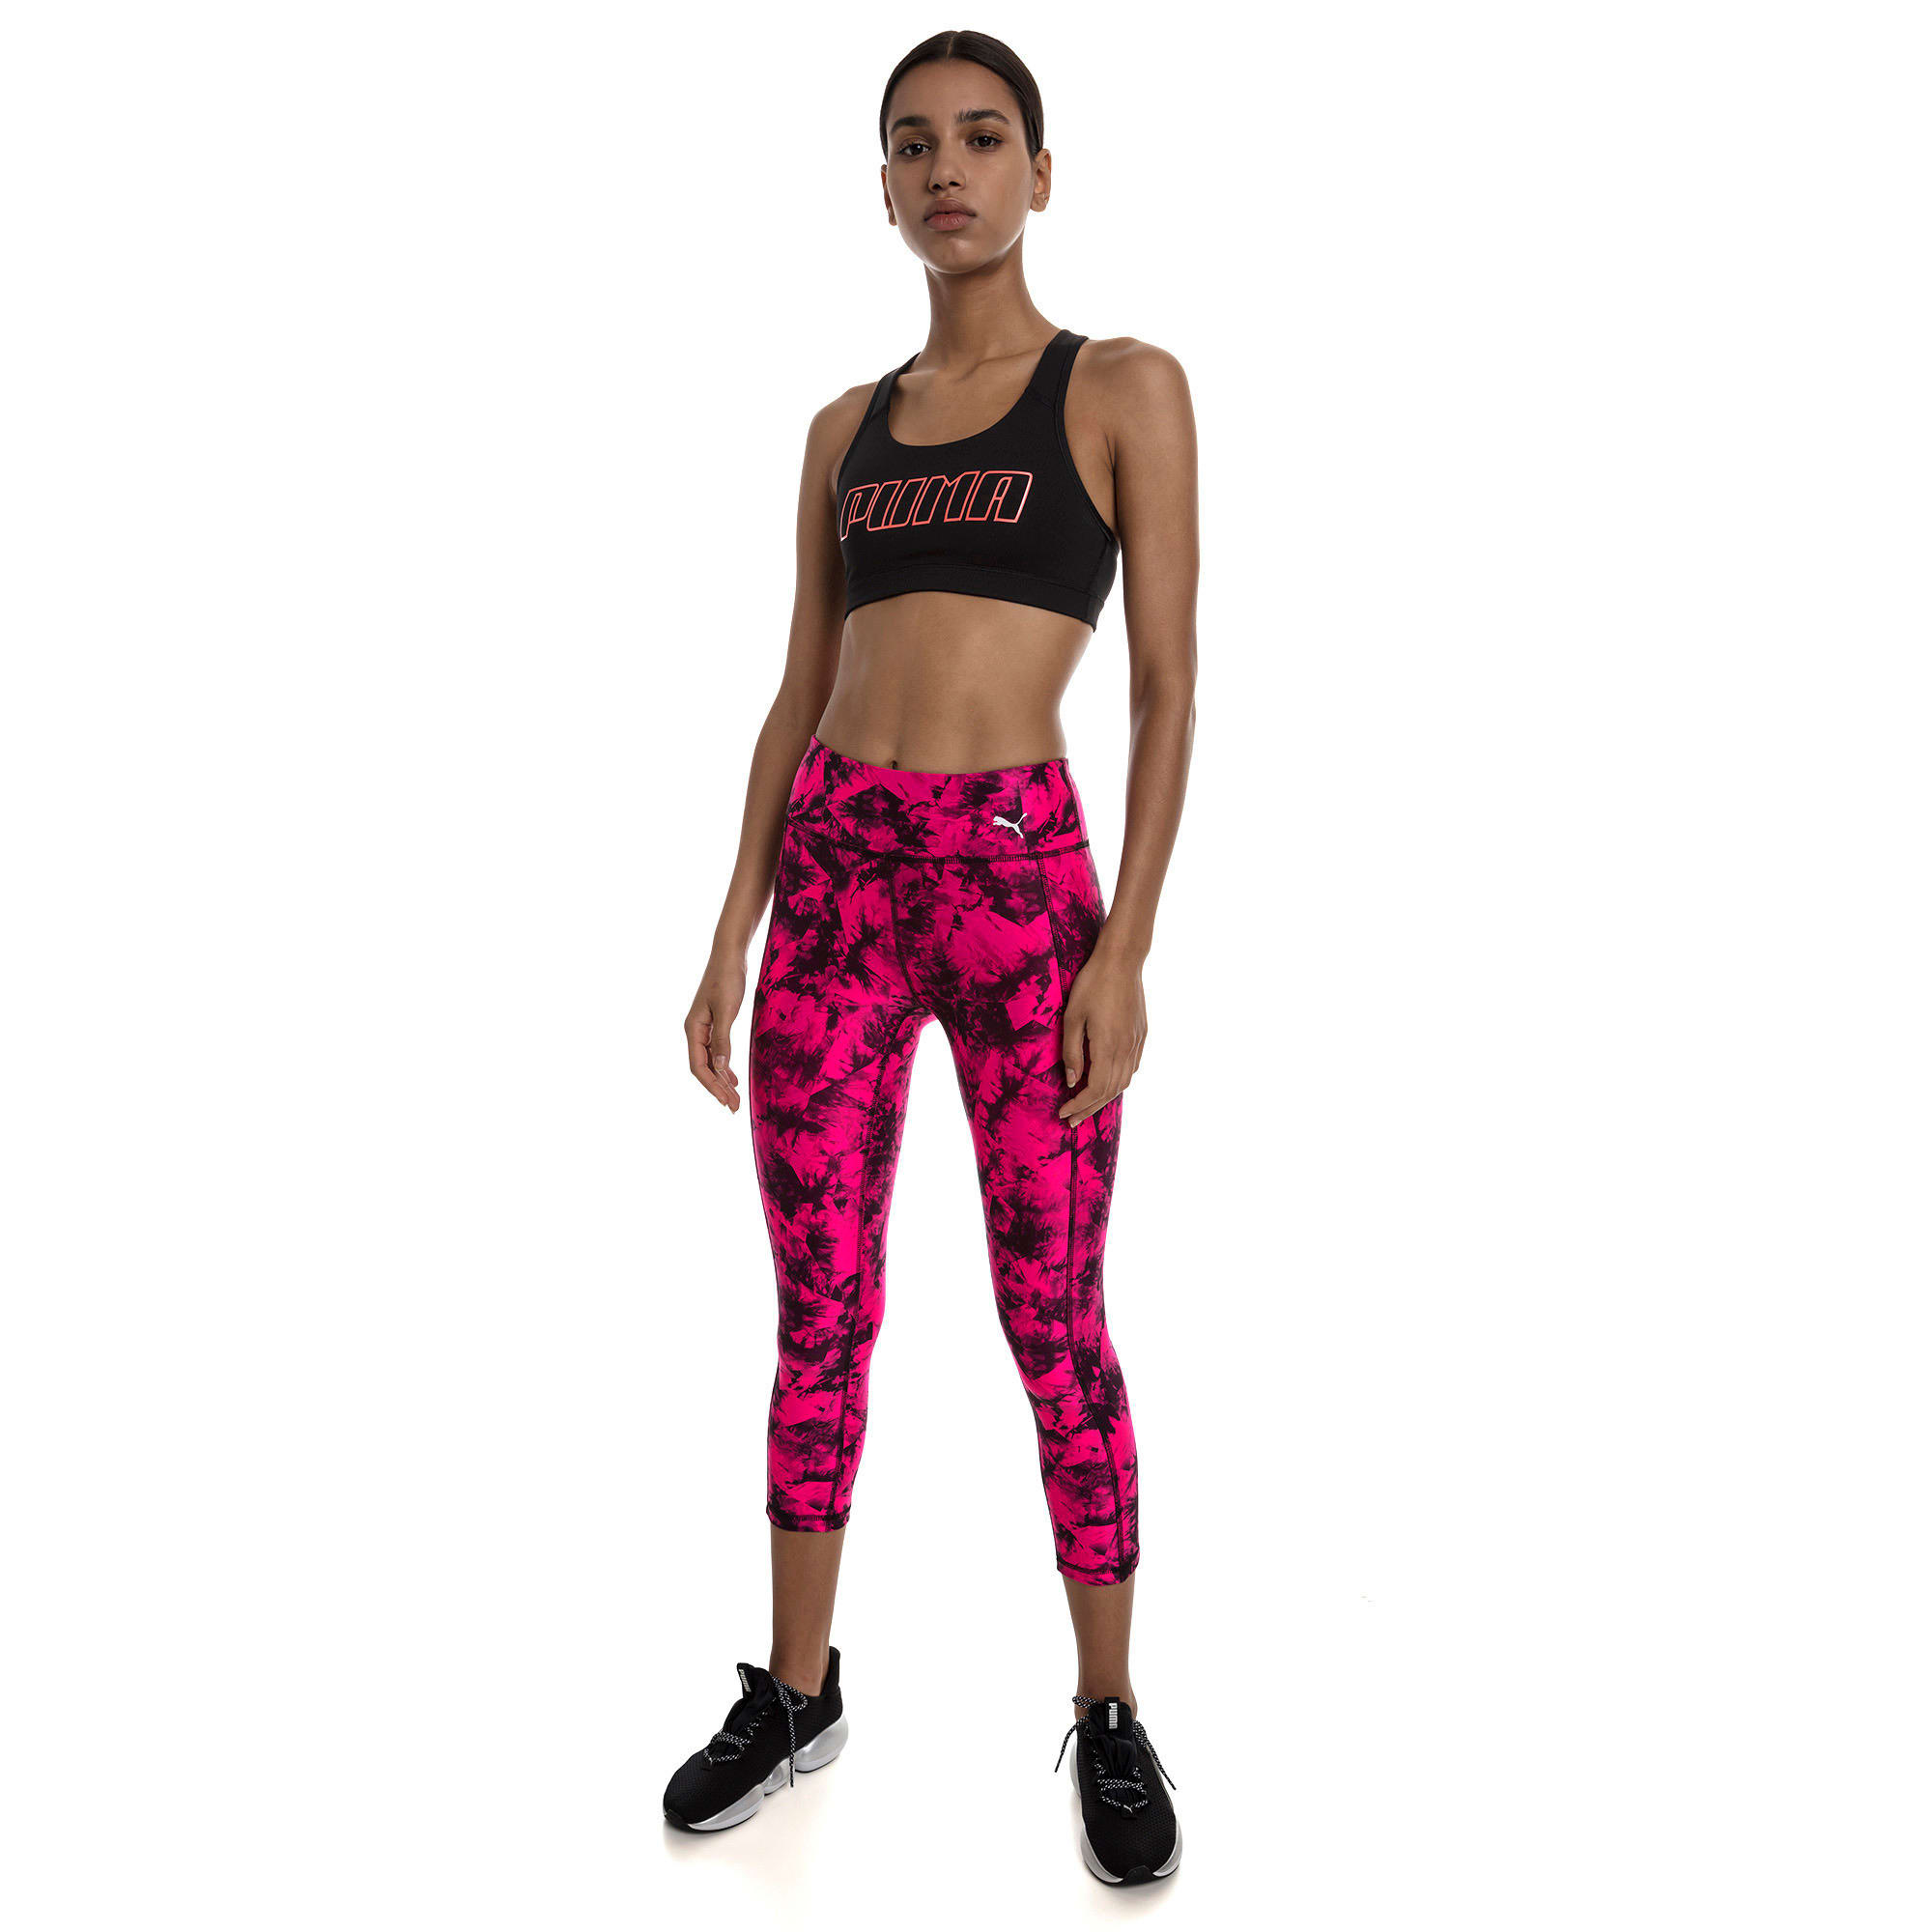 Thumbnail 3 of 4Keeps Mid Impact Women's Bra Top, Puma Black-Bright Peach PUMA, medium-IND